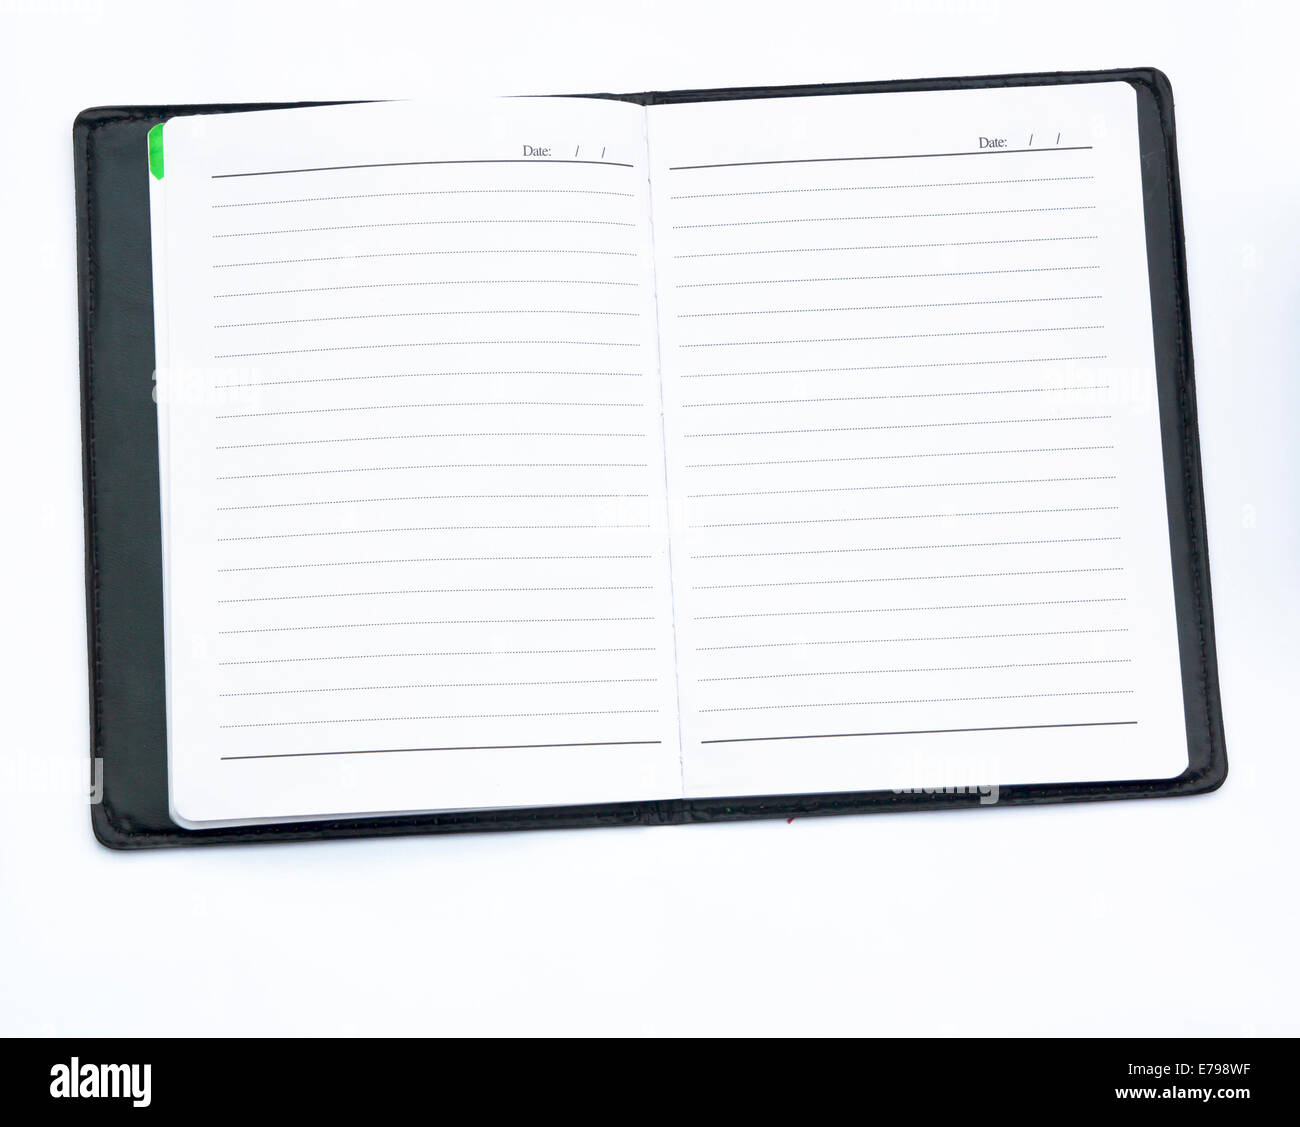 old notebook paper on a sheet of paper. - Stock Image